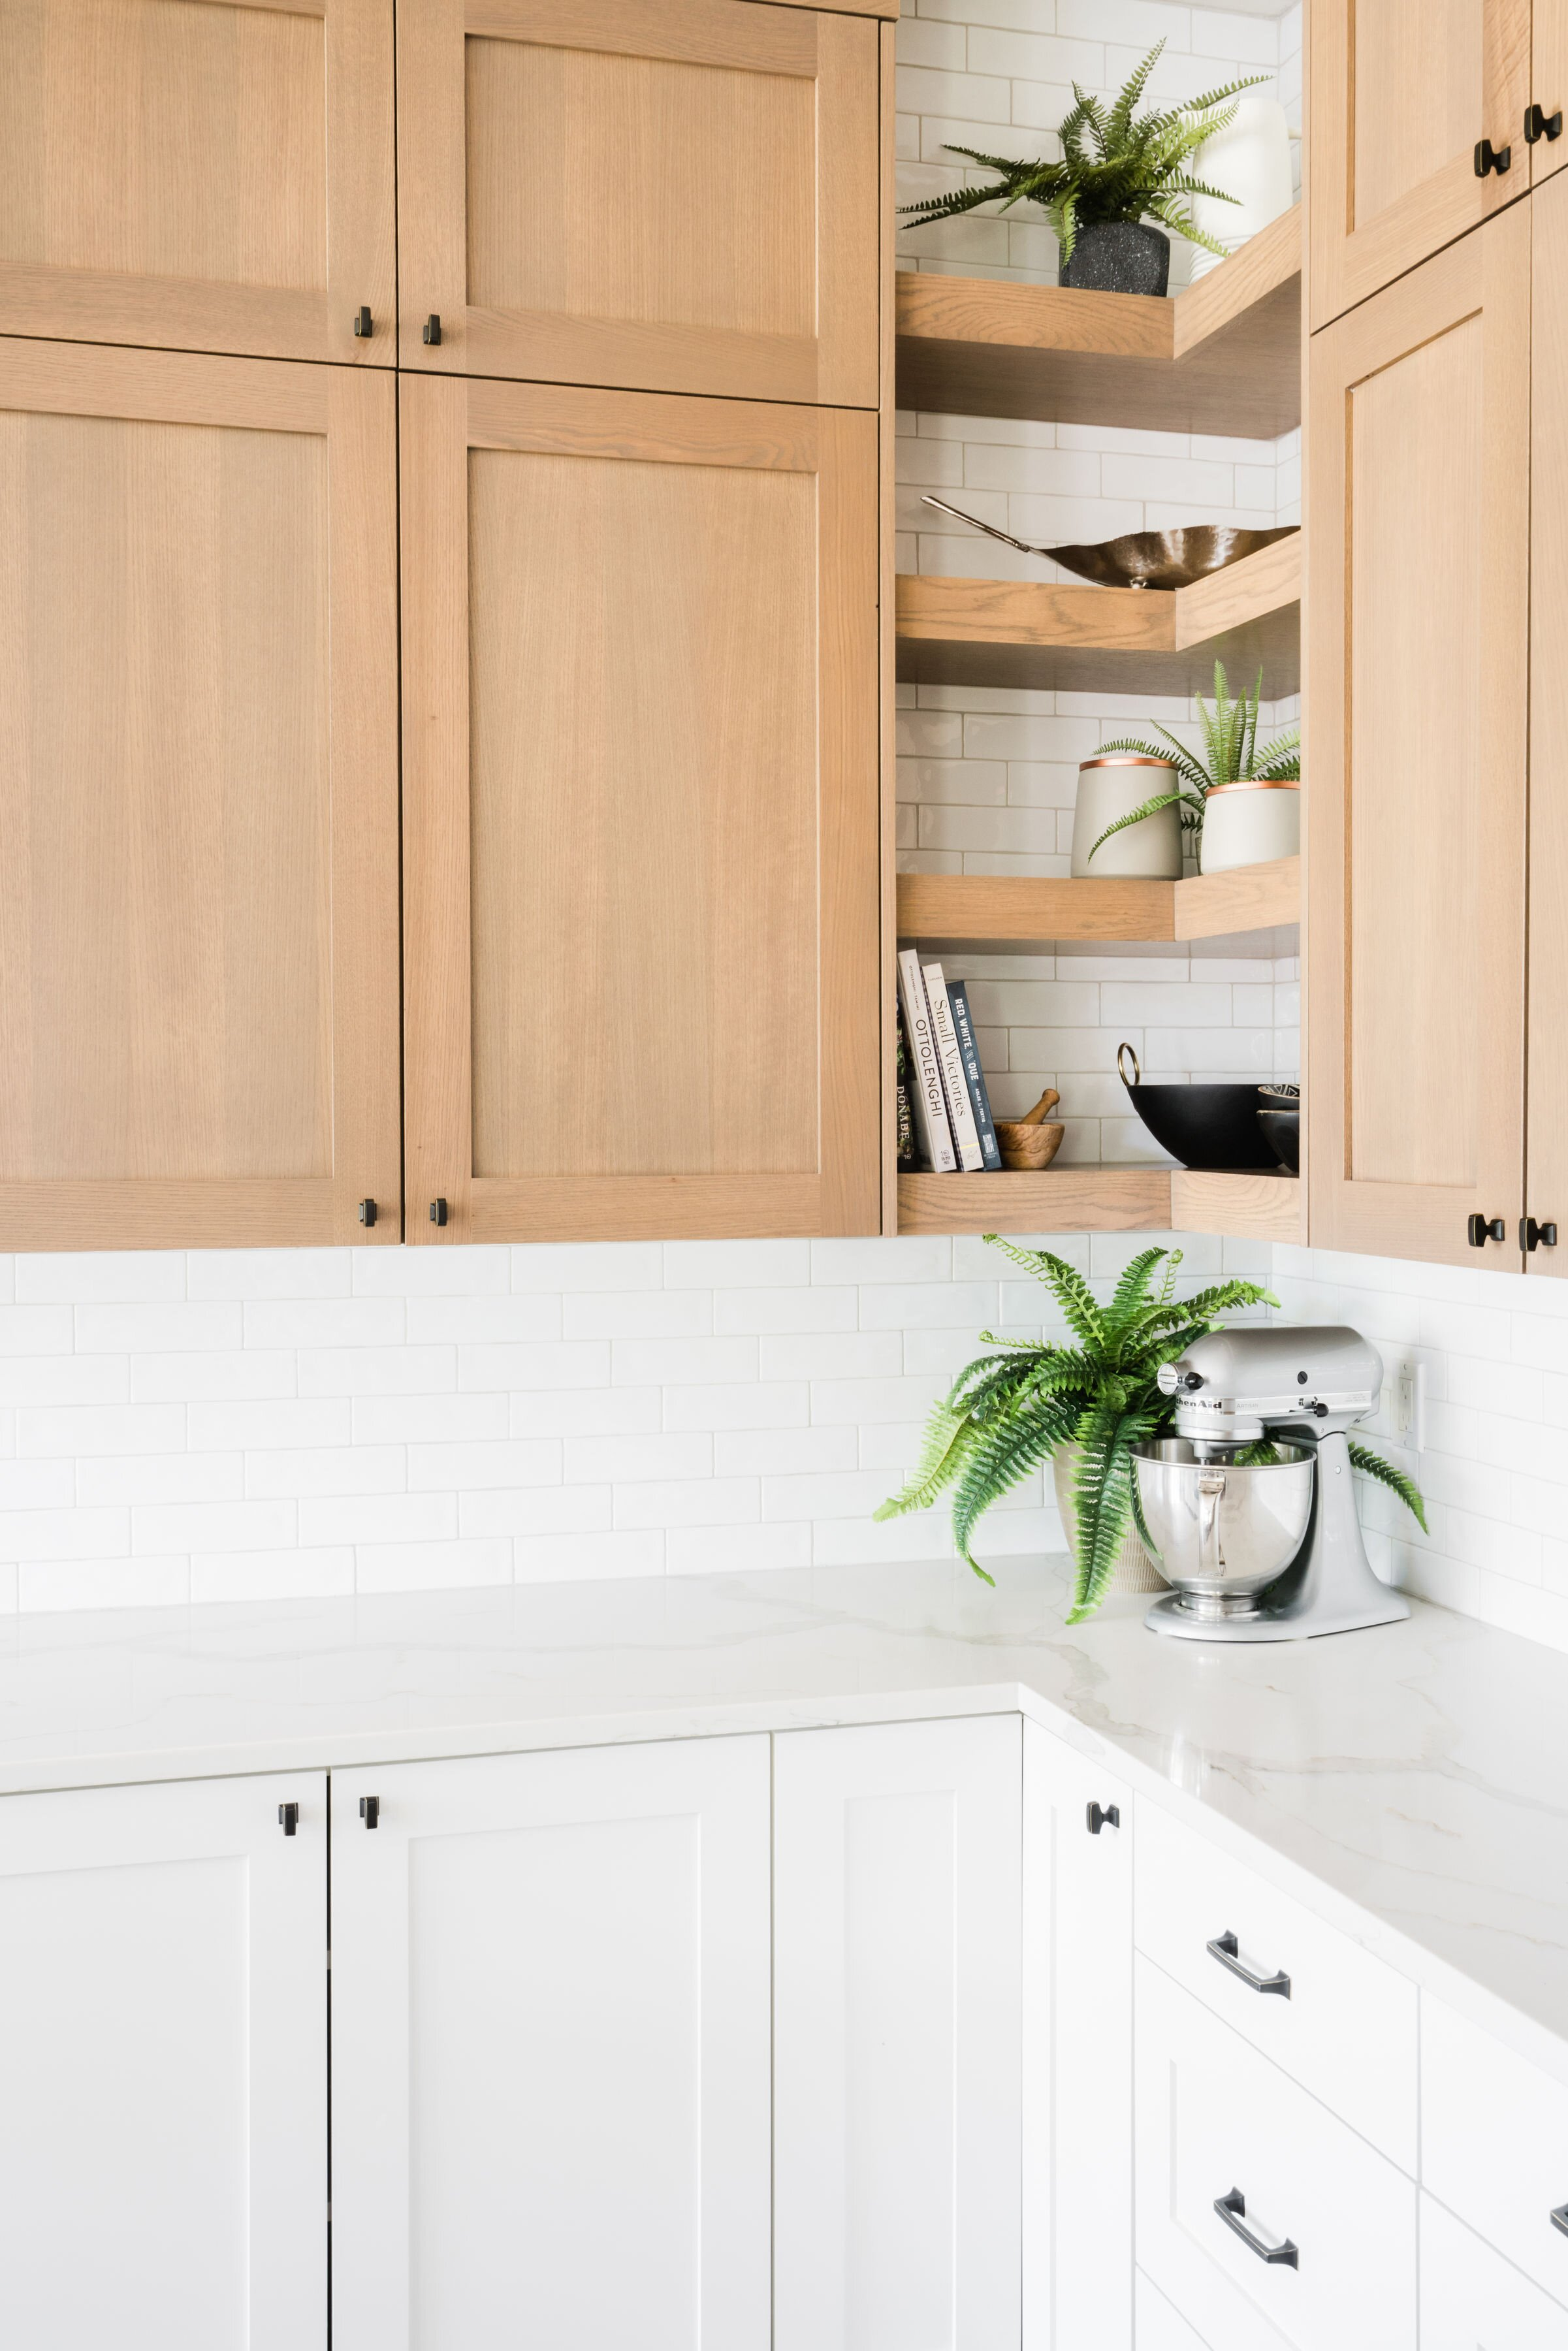 How To Choose The Right Corner Cabinet Or Shelf For Your Space Martha Stewart